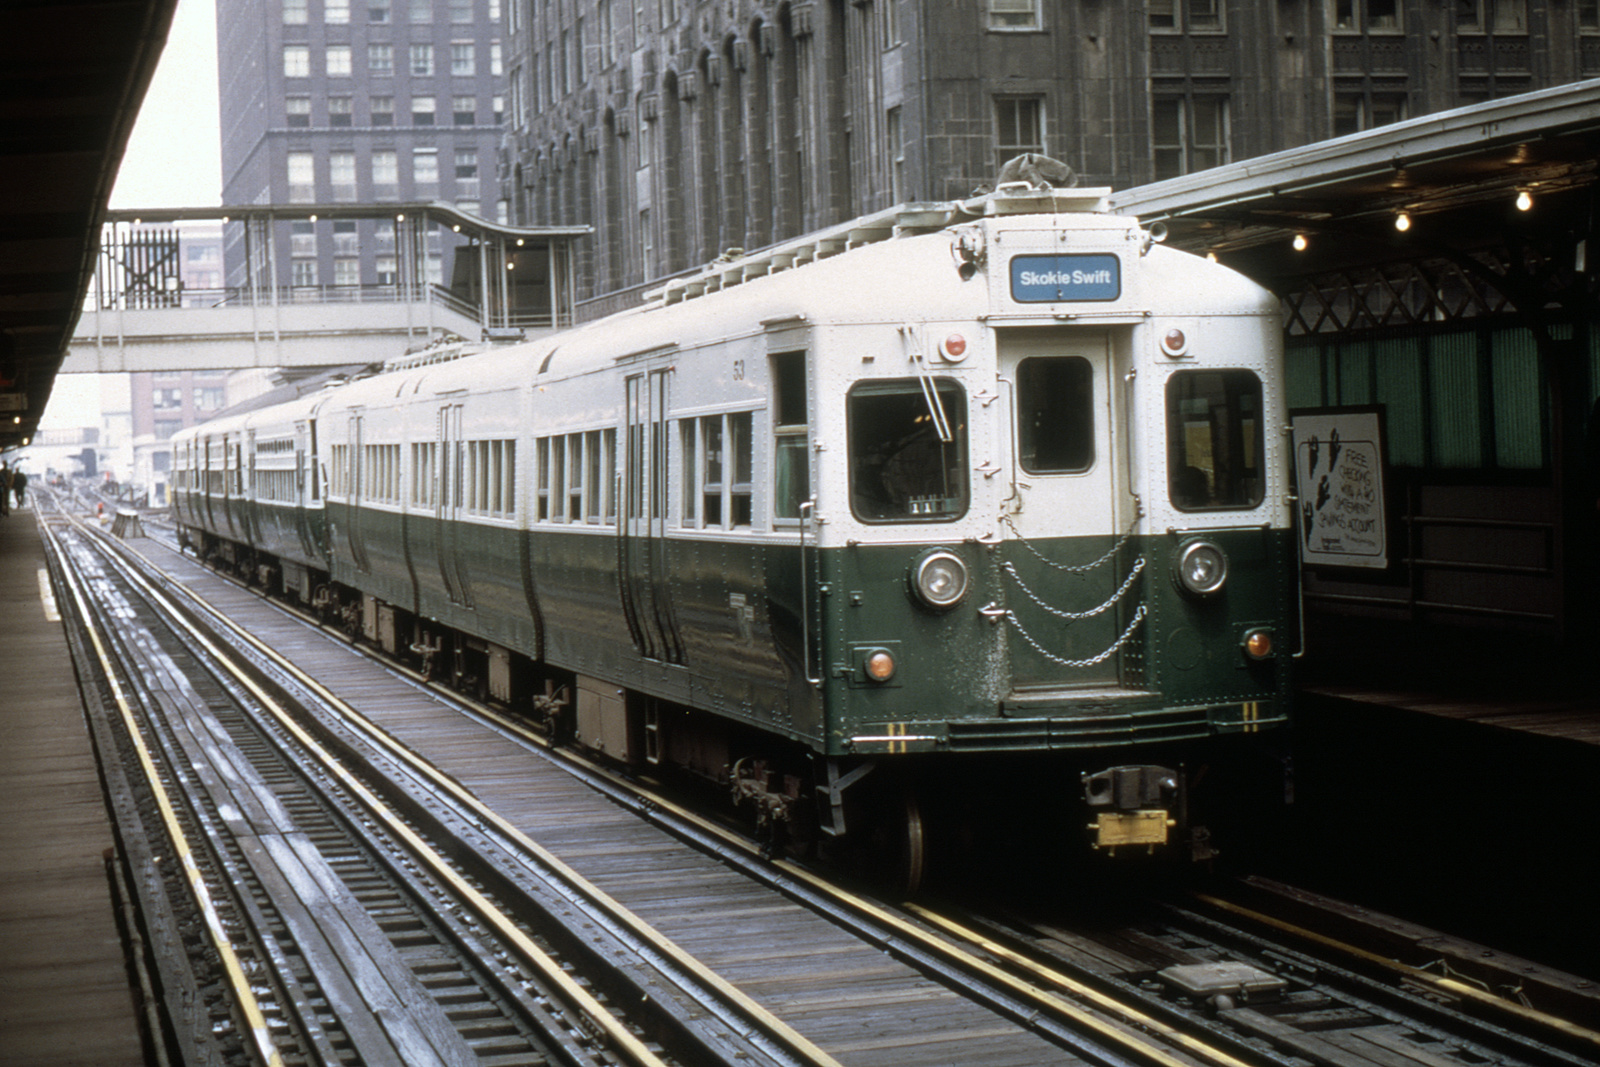 (394k, 1024x683)<br><b>Country:</b> United States<br><b>City:</b> Chicago, IL<br><b>System:</b> Chicago Transit Authority <br><b>Line:</b> CTA Loop<br><b>Location:</b> Randolph/Wells <br><b>Route:</b> Fan Trip<br><b>Car:</b> CTA 51-54 Series 53 <br><b>Collection of:</b> David Pirmann<br><b>Date:</b> 5/28/1973<br><b>Viewed (this week/total):</b> 0 / 346